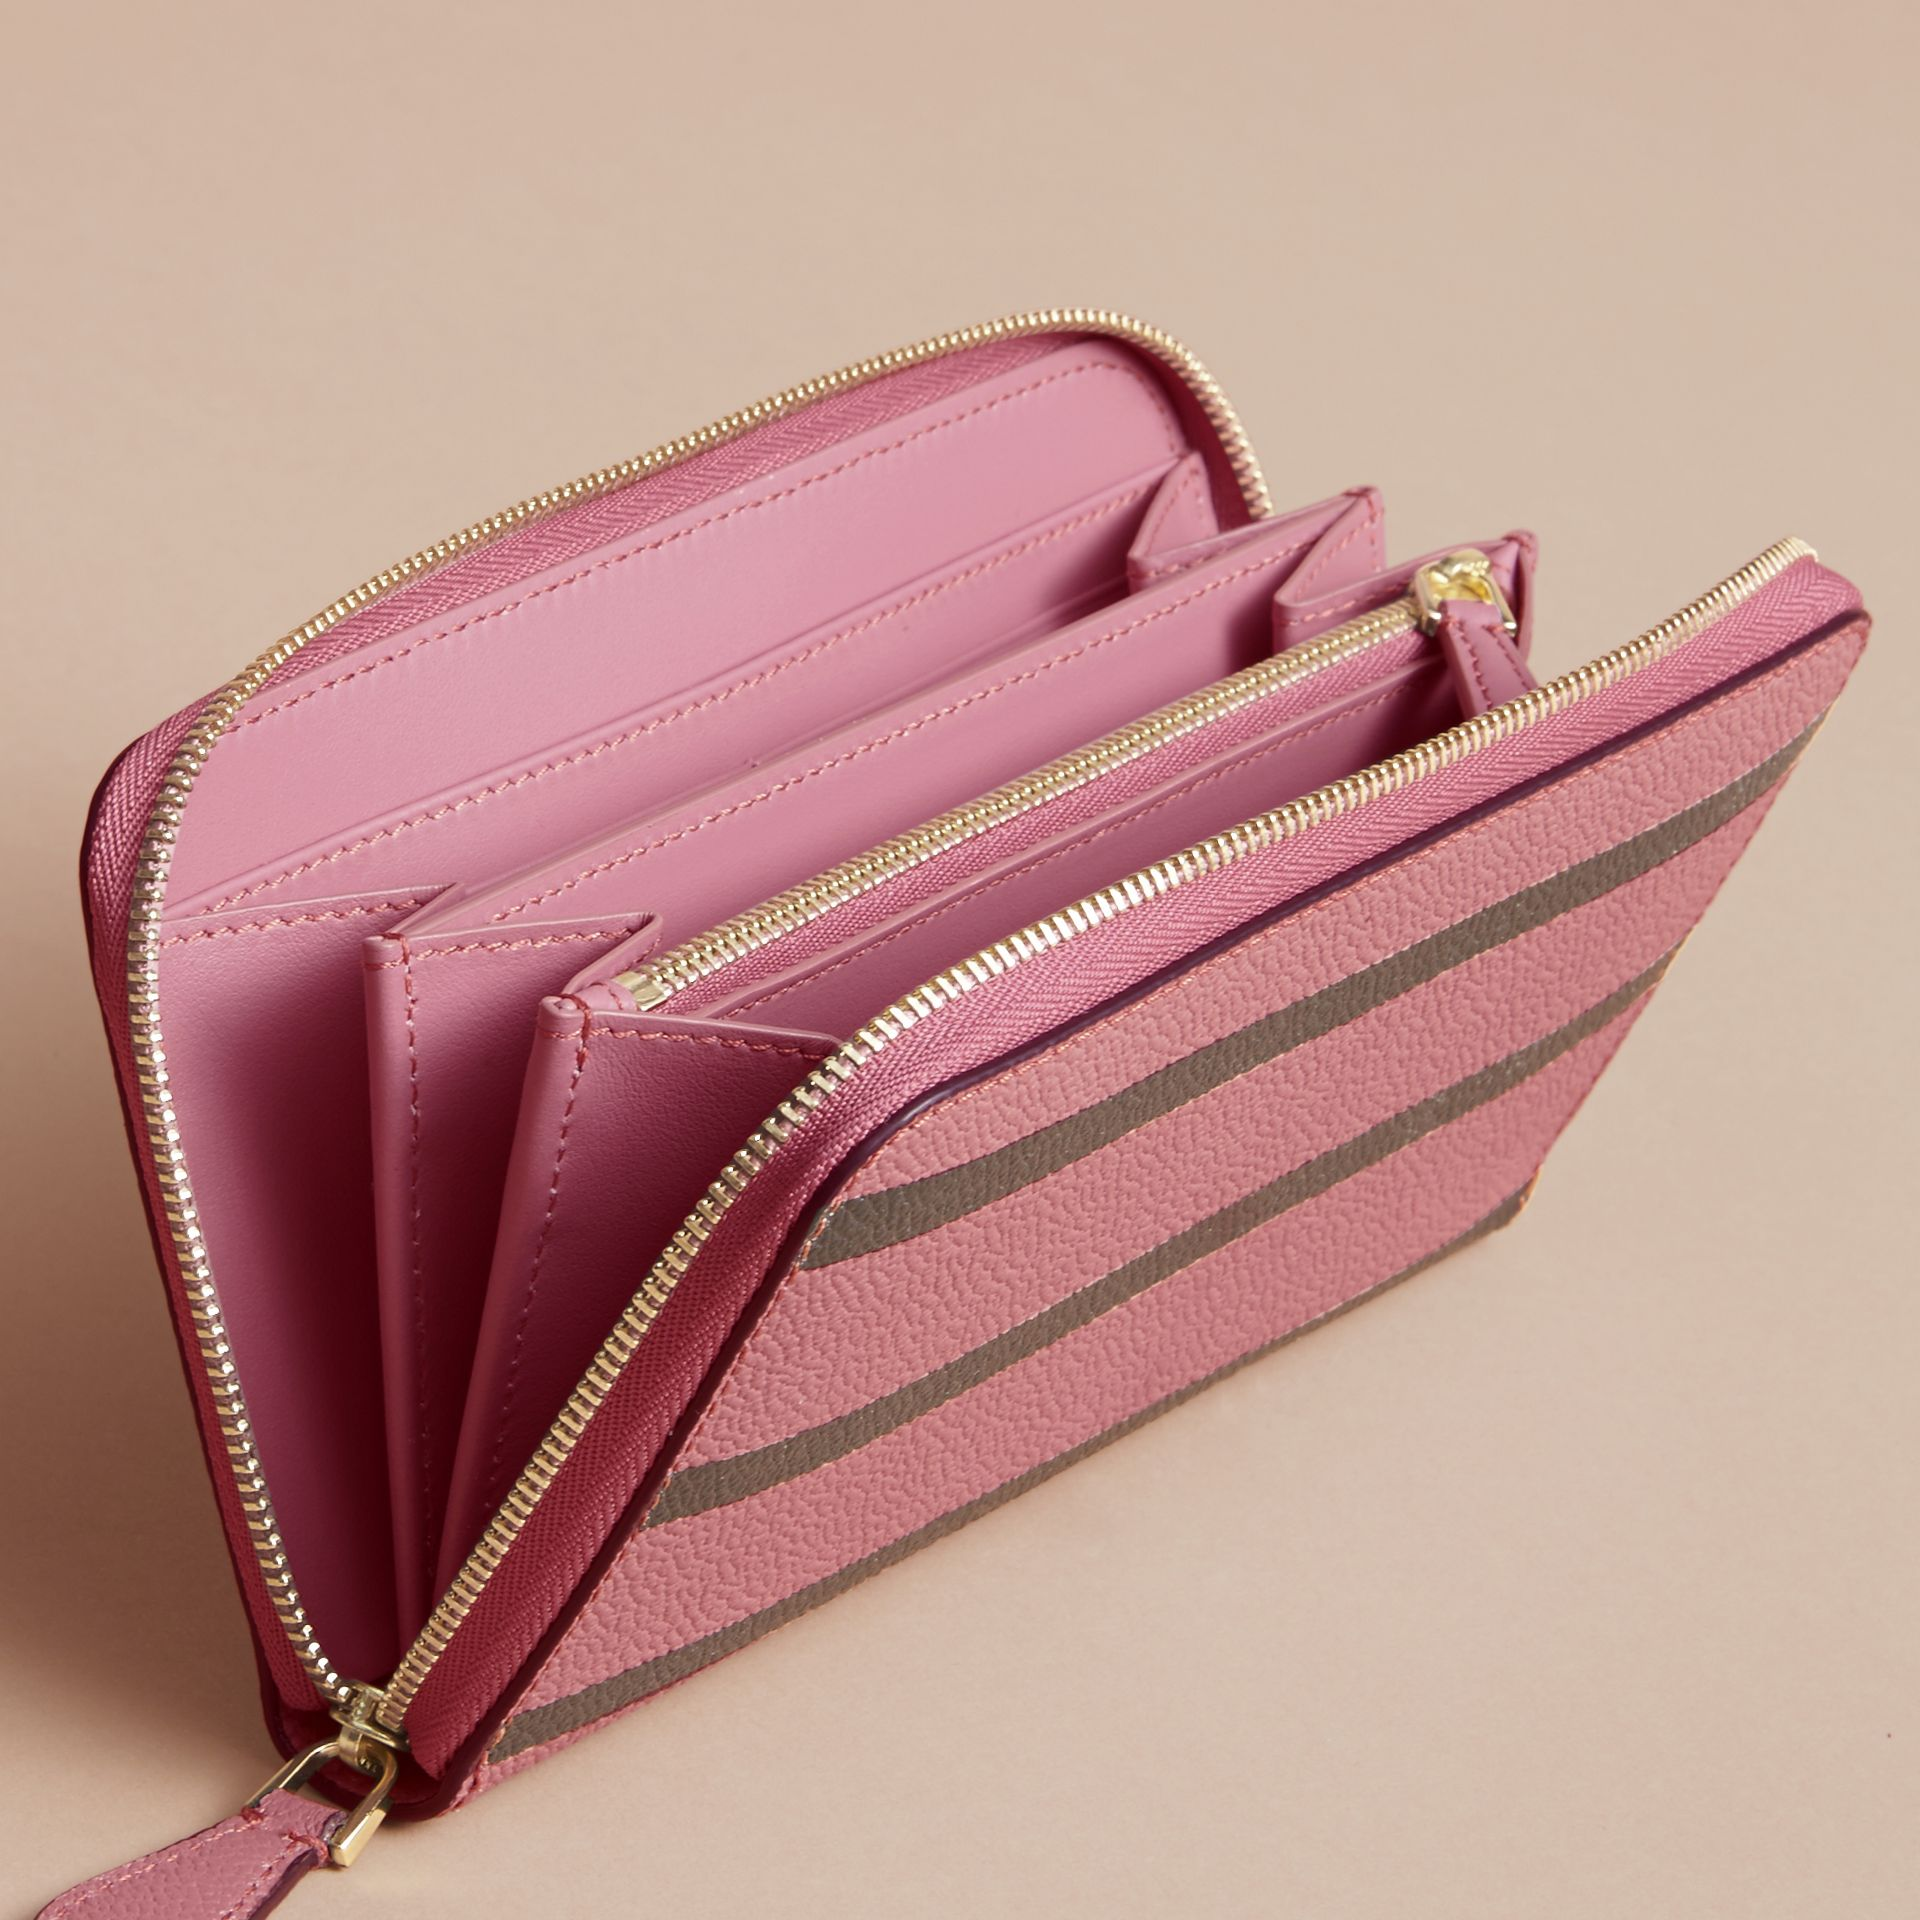 Trompe L'oeil Print Leather Ziparound Wallet in Dusty Pink - Women | Burberry - gallery image 8